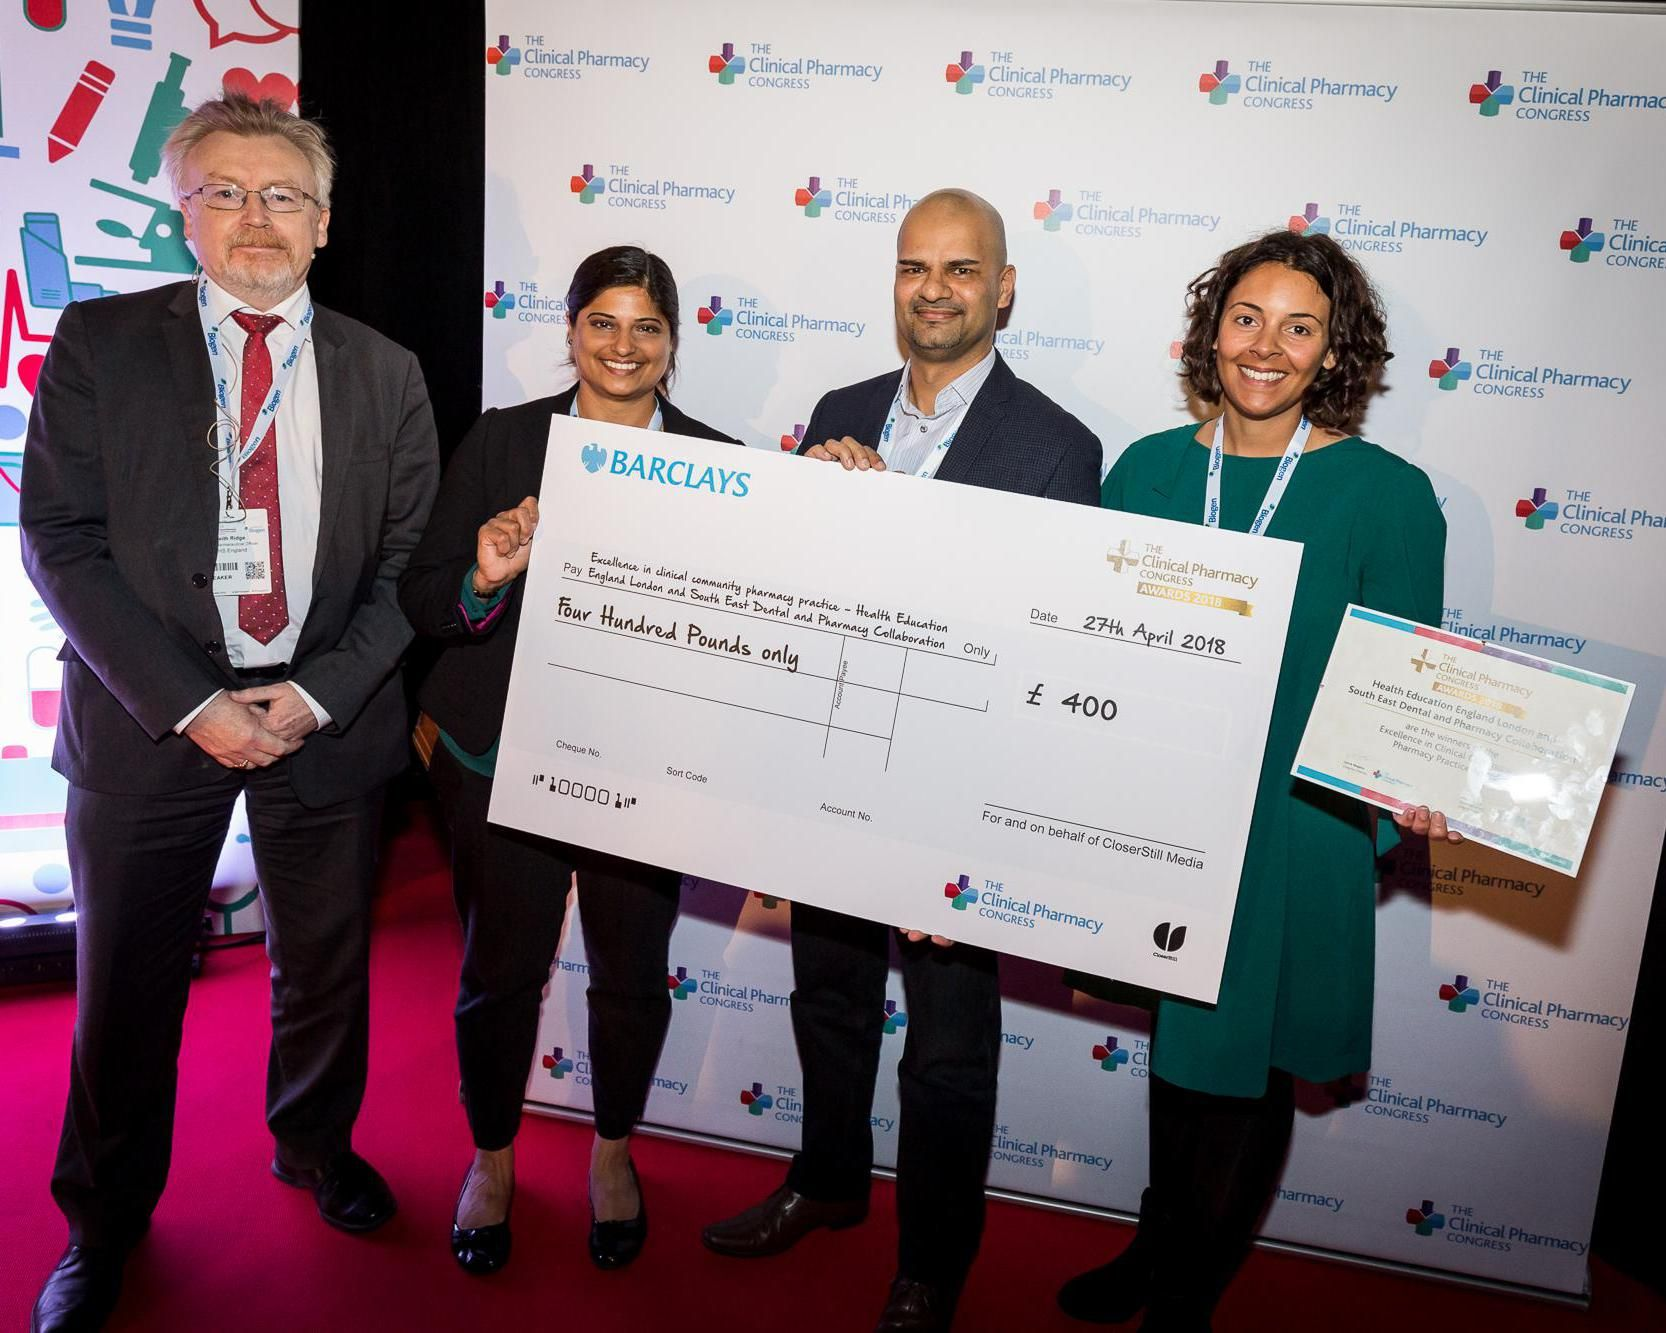 The Best of Clinical Pharmacy Awards